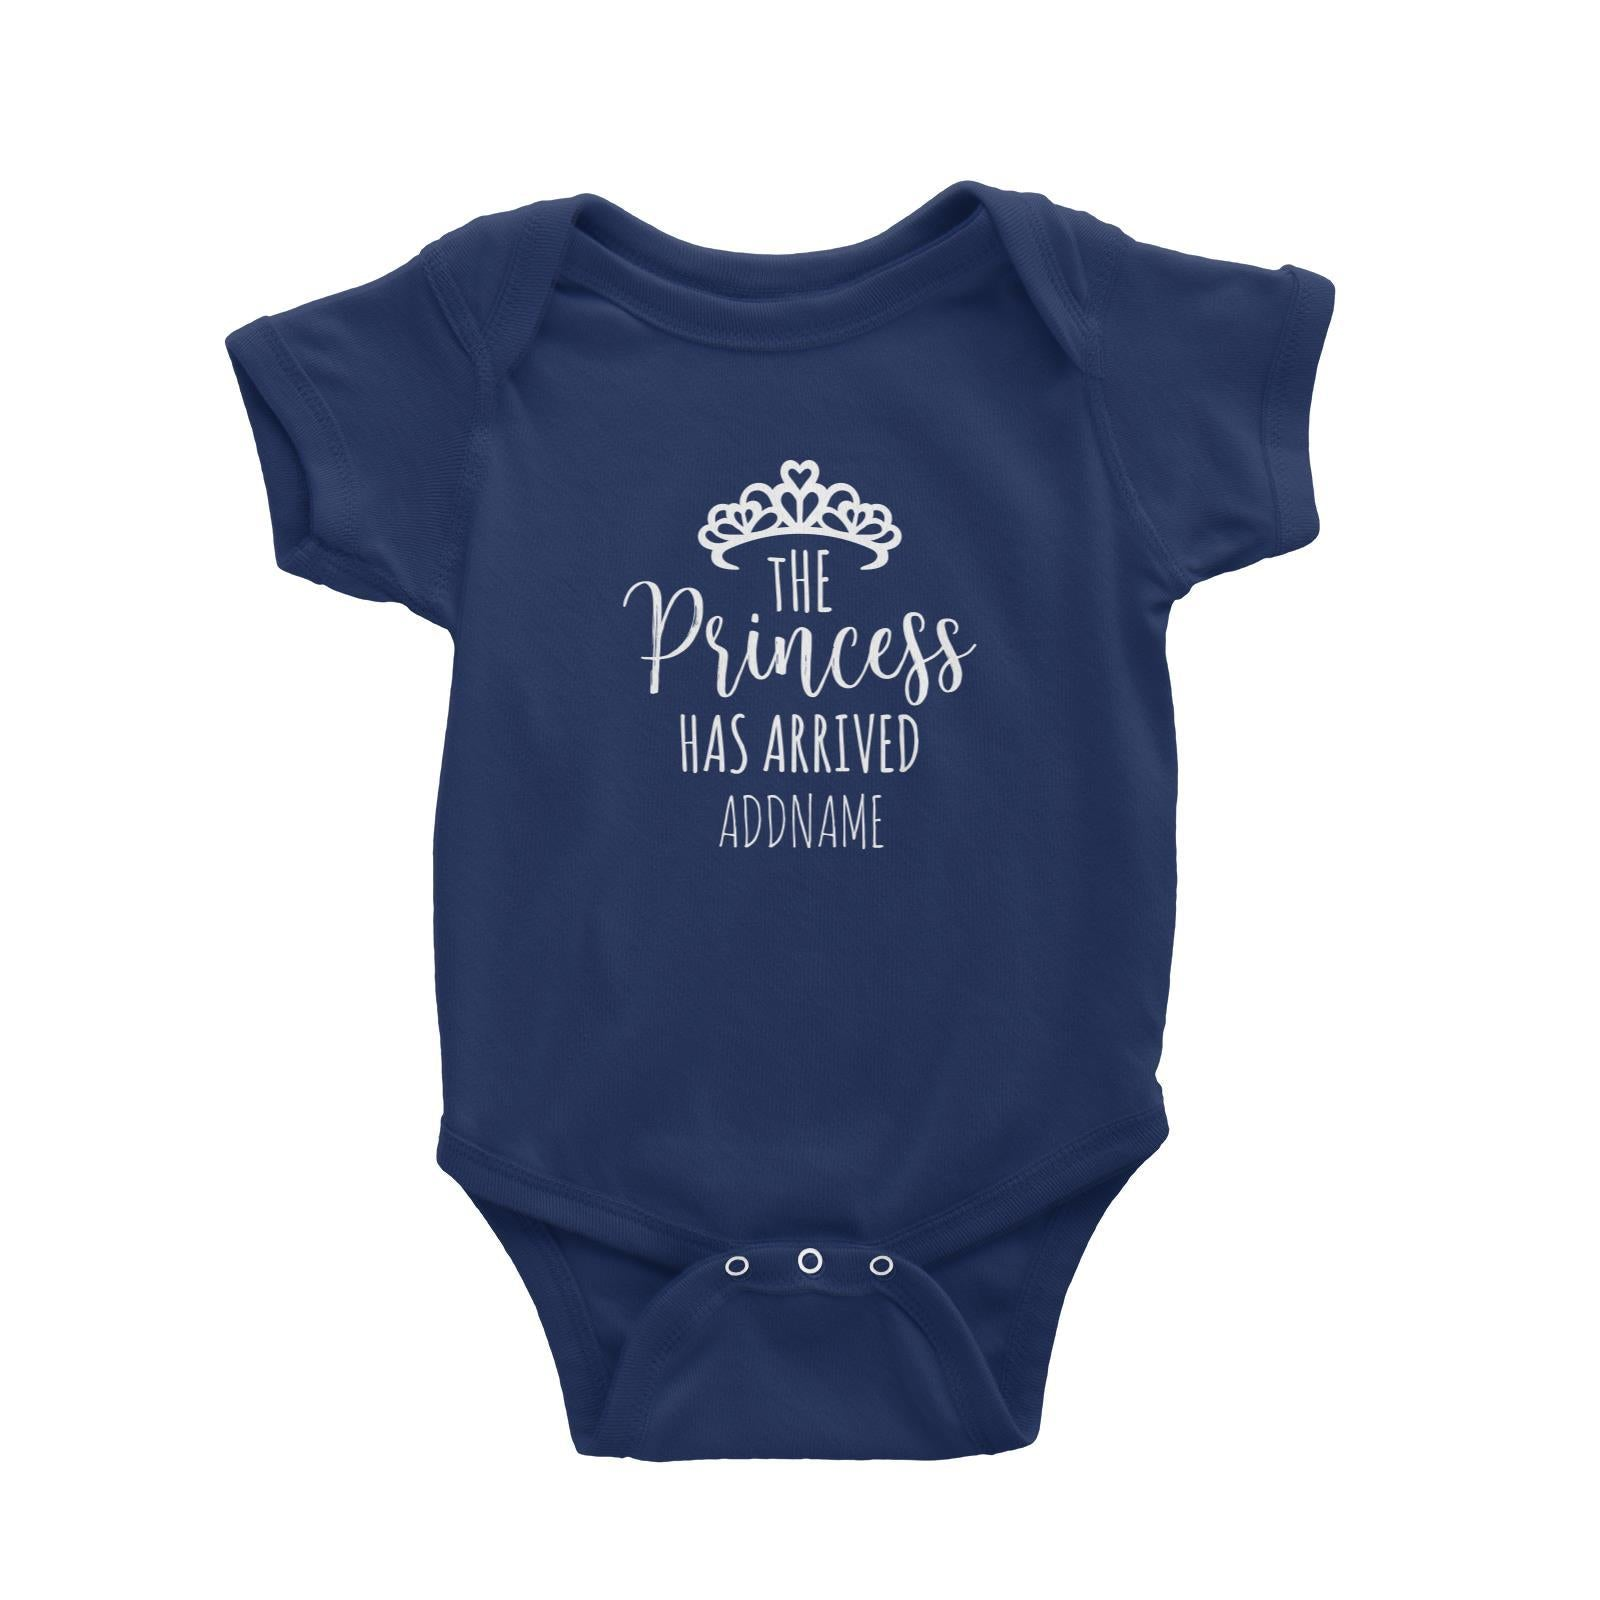 The Princess Has Arrived with Tiara Addname Baby Romper